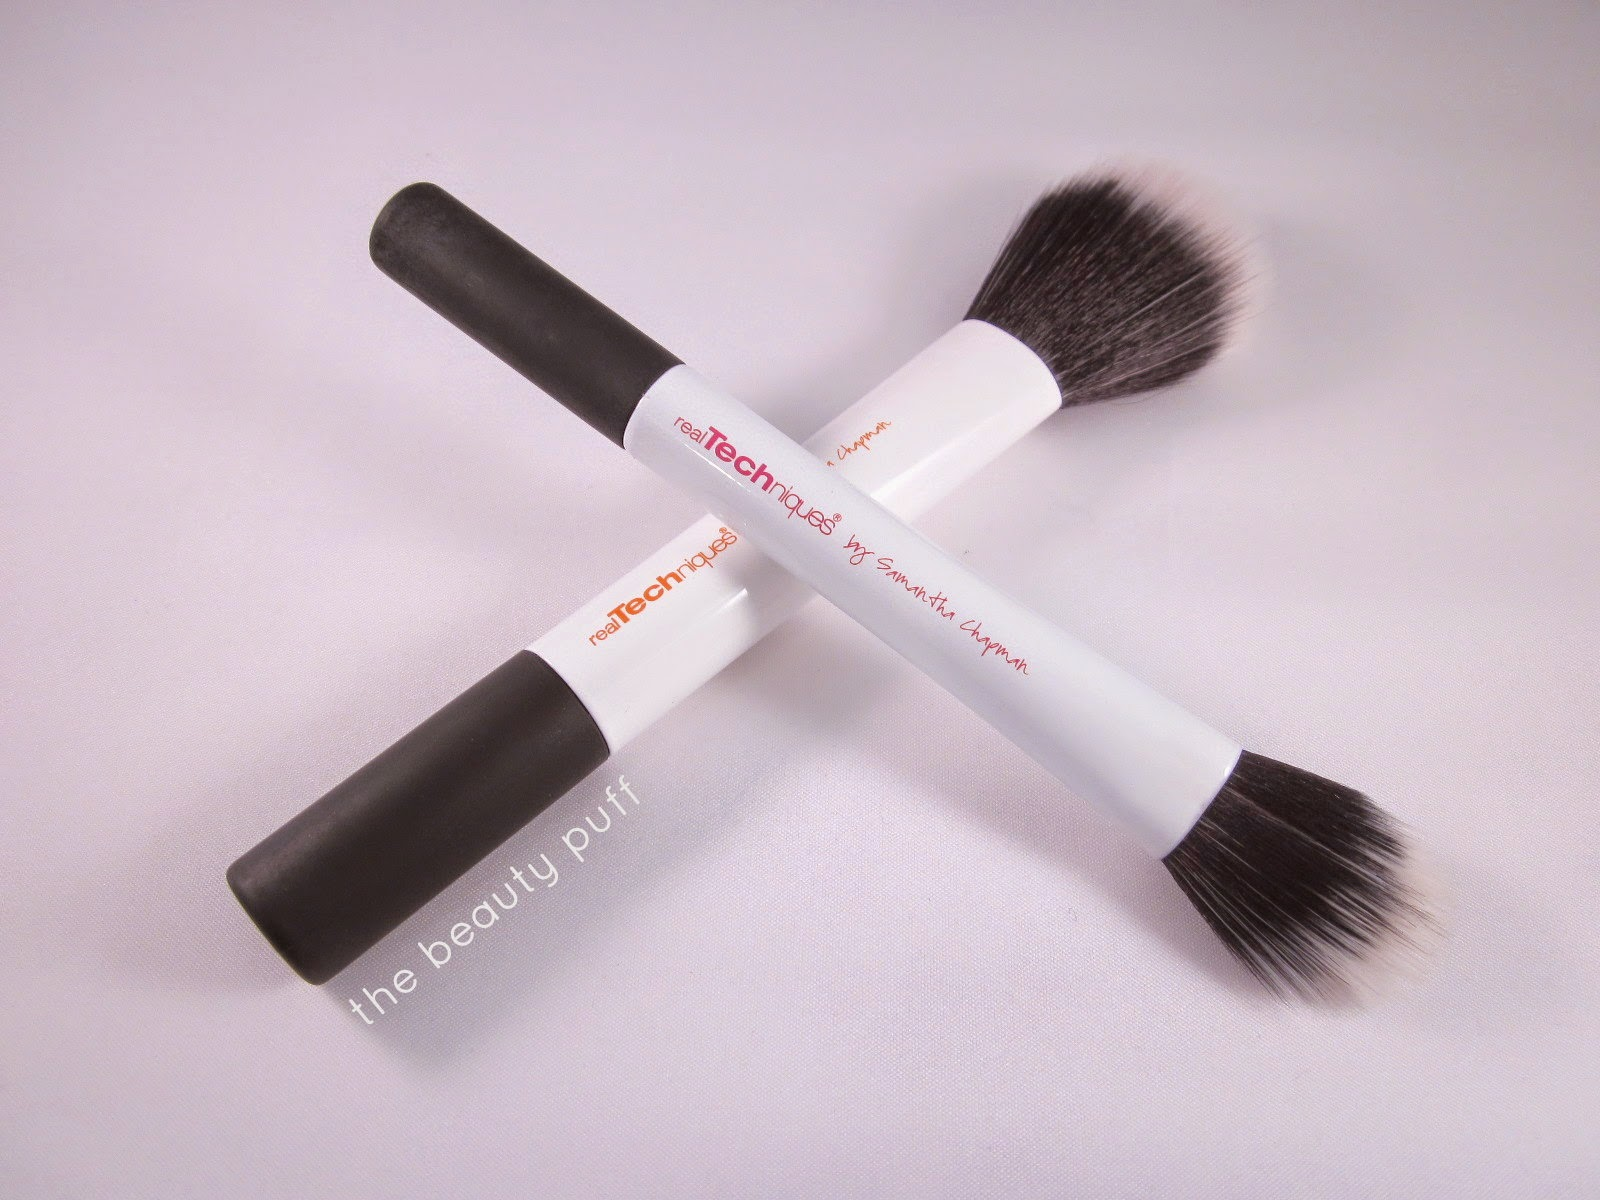 real techniques duo fiber brushes - the beauty puff